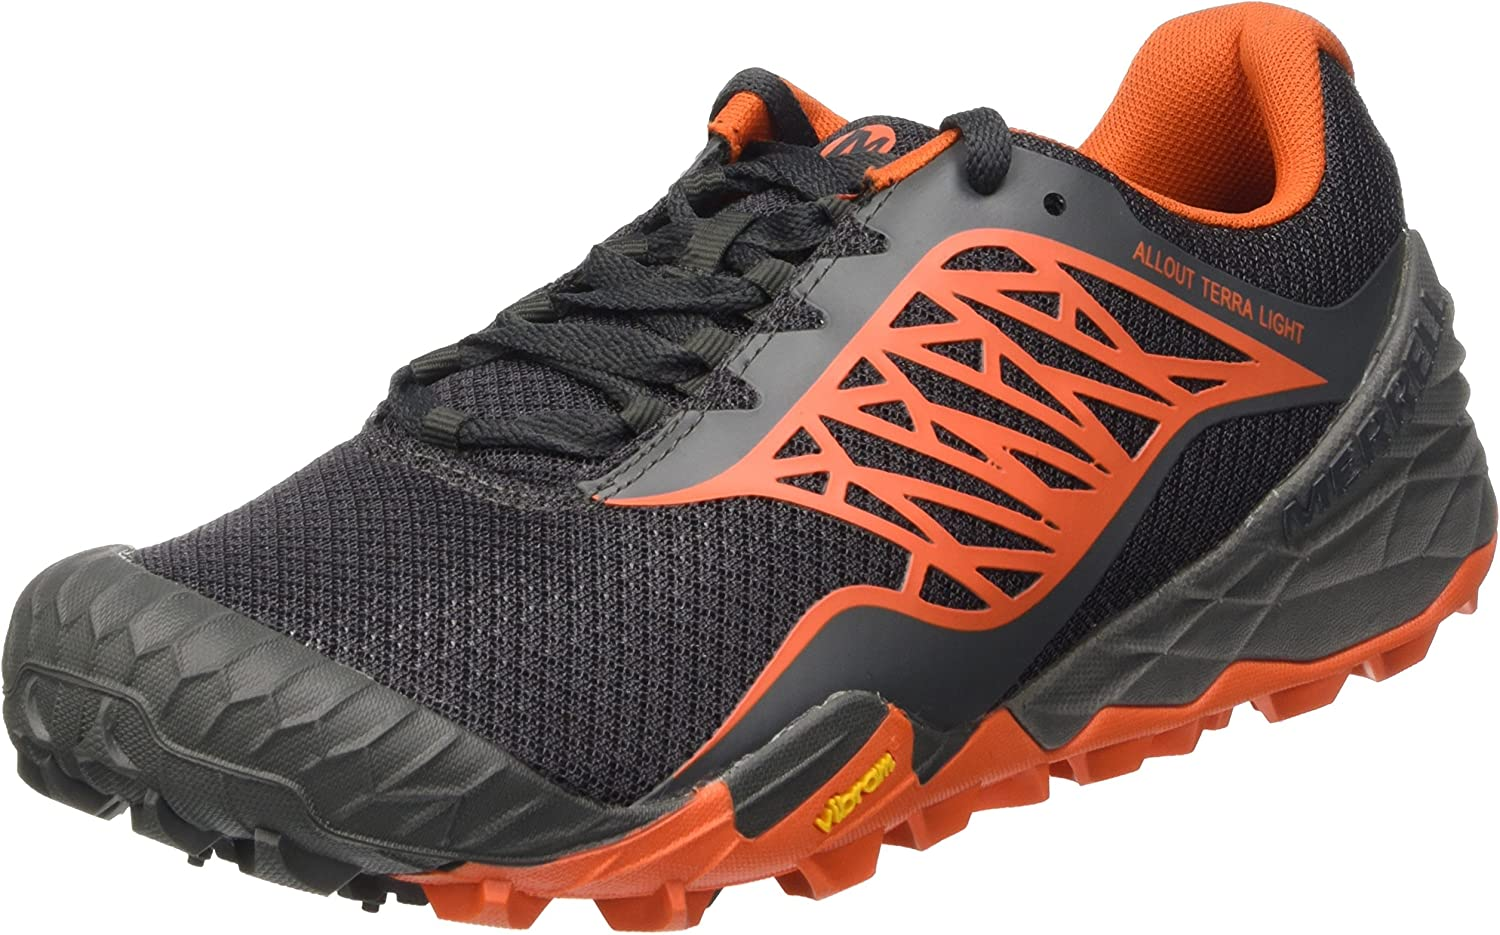 Merrell Men's All Out All Out Terra Low Rise Hiking Boots